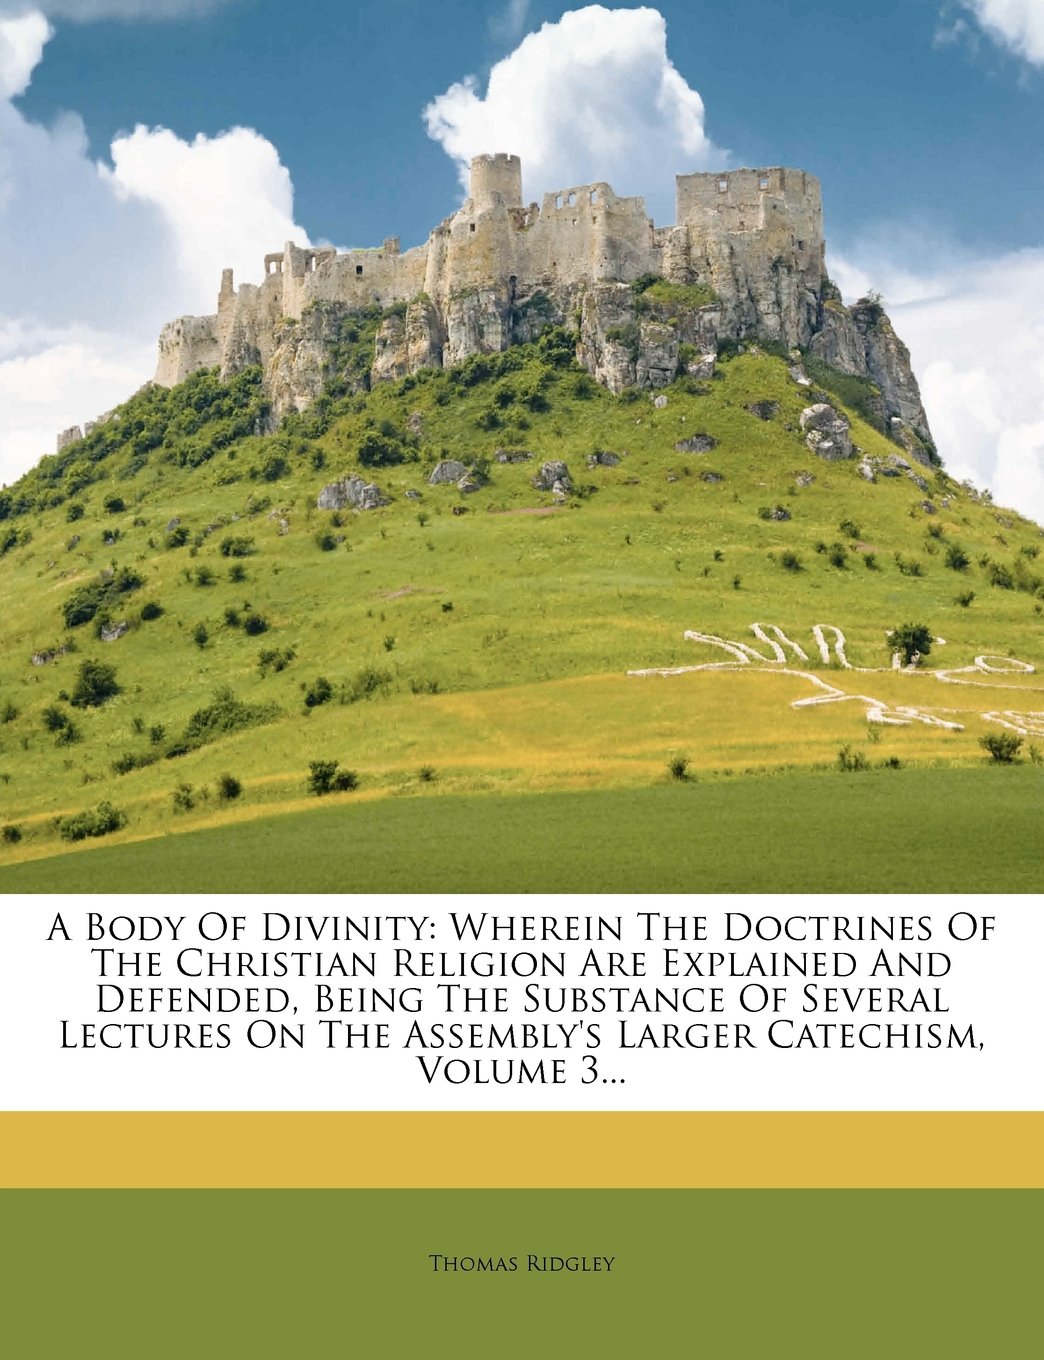 Download A Body Of Divinity: Wherein The Doctrines Of The Christian Religion Are Explained And Defended, Being The Substance Of Several Lectures On The Assembly's Larger Catechism, Volume 3... pdf epub